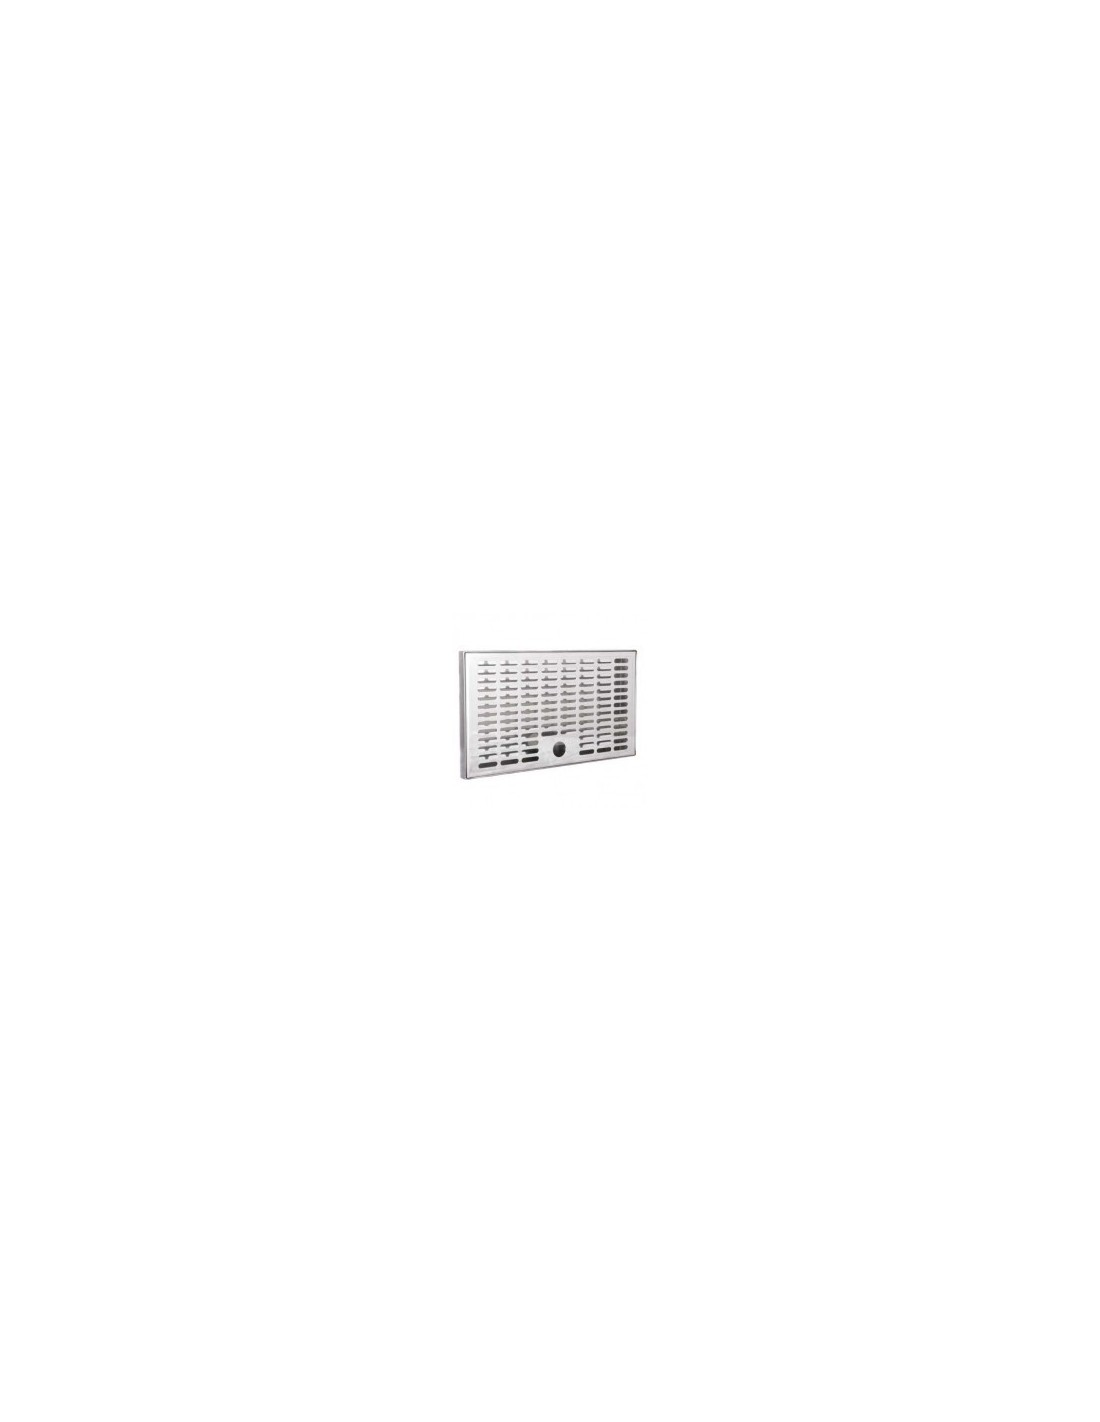 ODM01605 - Drip tray in stainless steel 300x180x20 mm